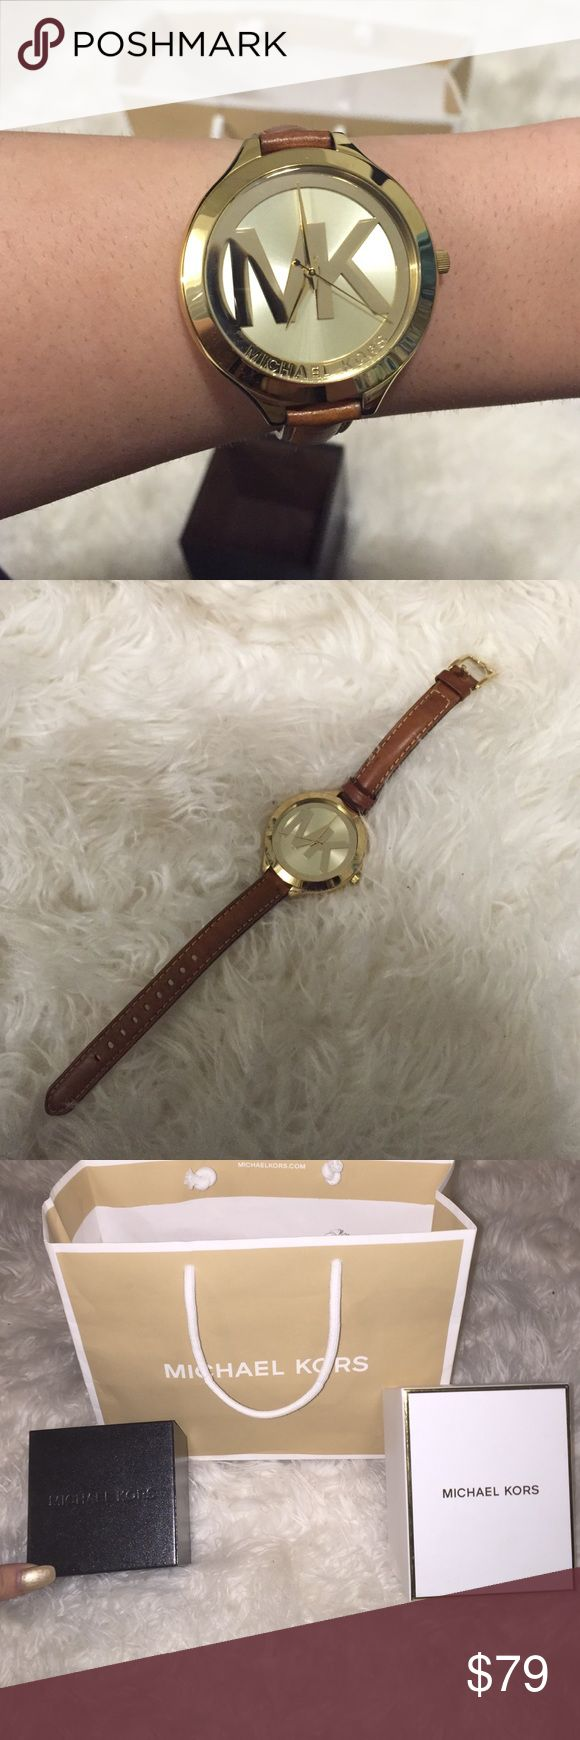 Micheal Kors gold watch ! Michael Kors gold watch with brown wrist band. In brand new condition no flaws. Will include two boxes and bag if wanted ! Also, this watch on sale in store is $125 so I am offering a great deal :) KORS Michael Kors Accessories Watches